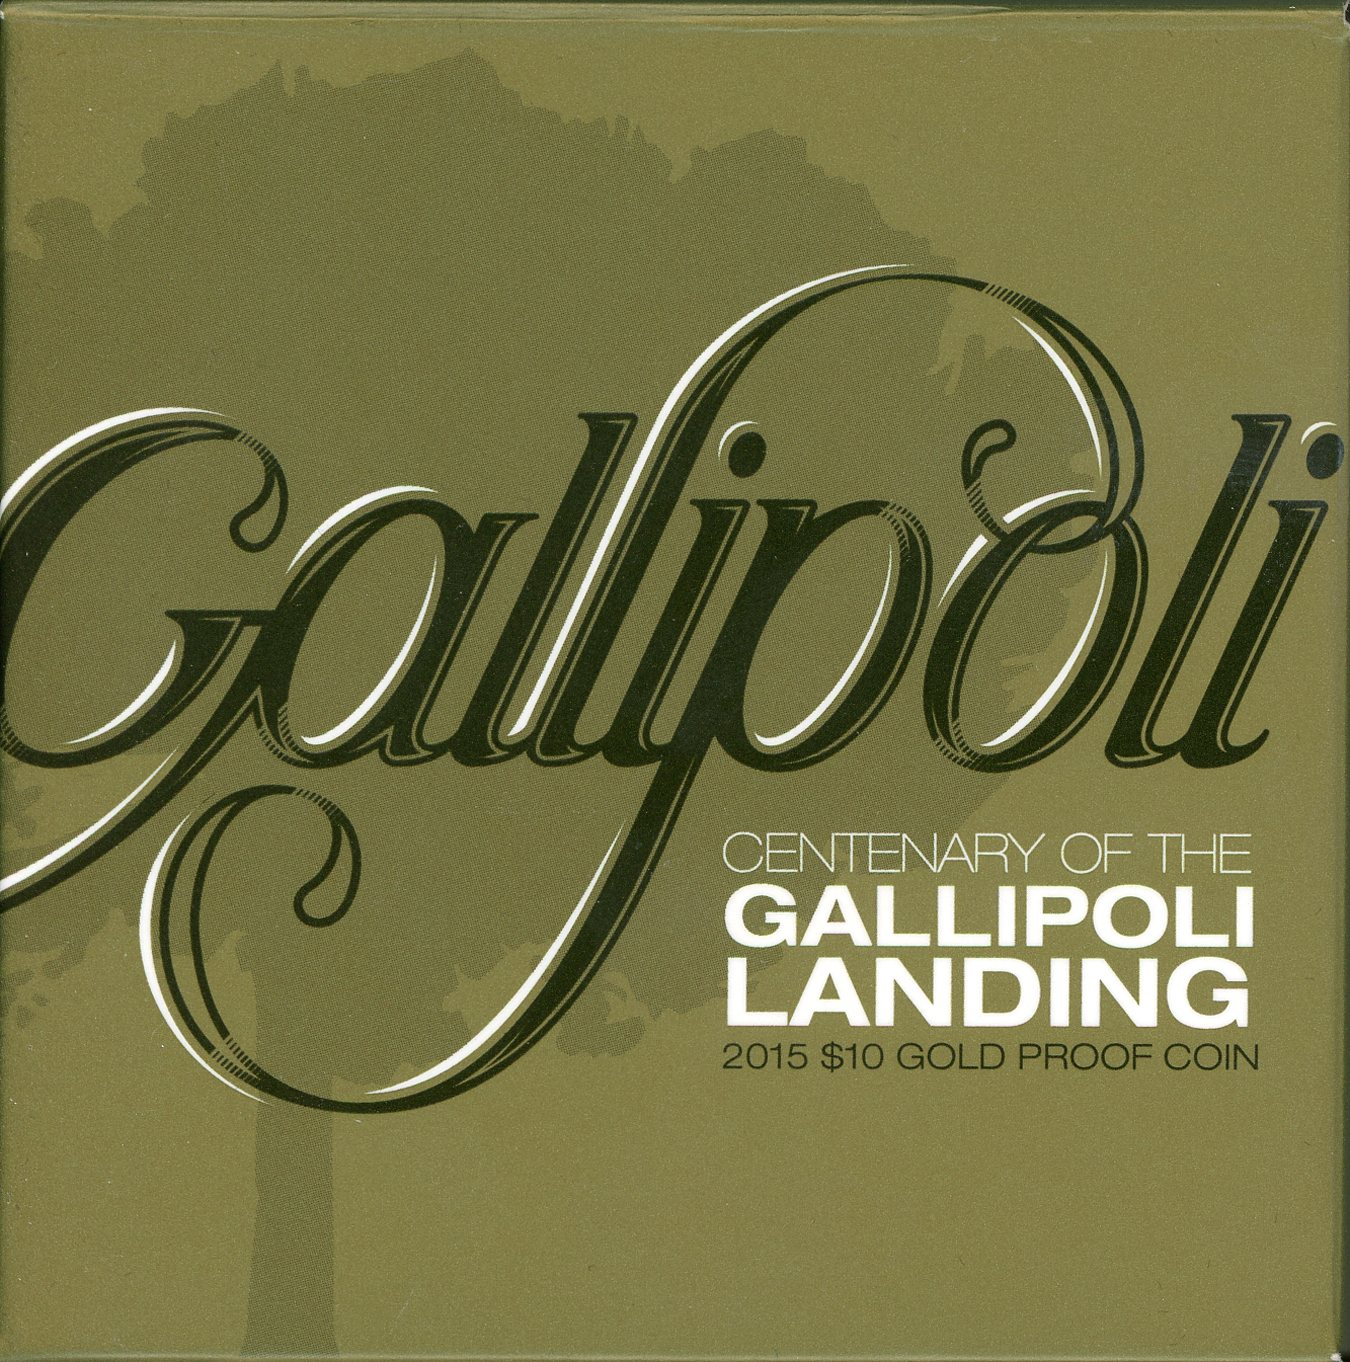 Thumbnail for 2015 $10 Gold Proof Coin - Centenary of the Gallopoli Landing